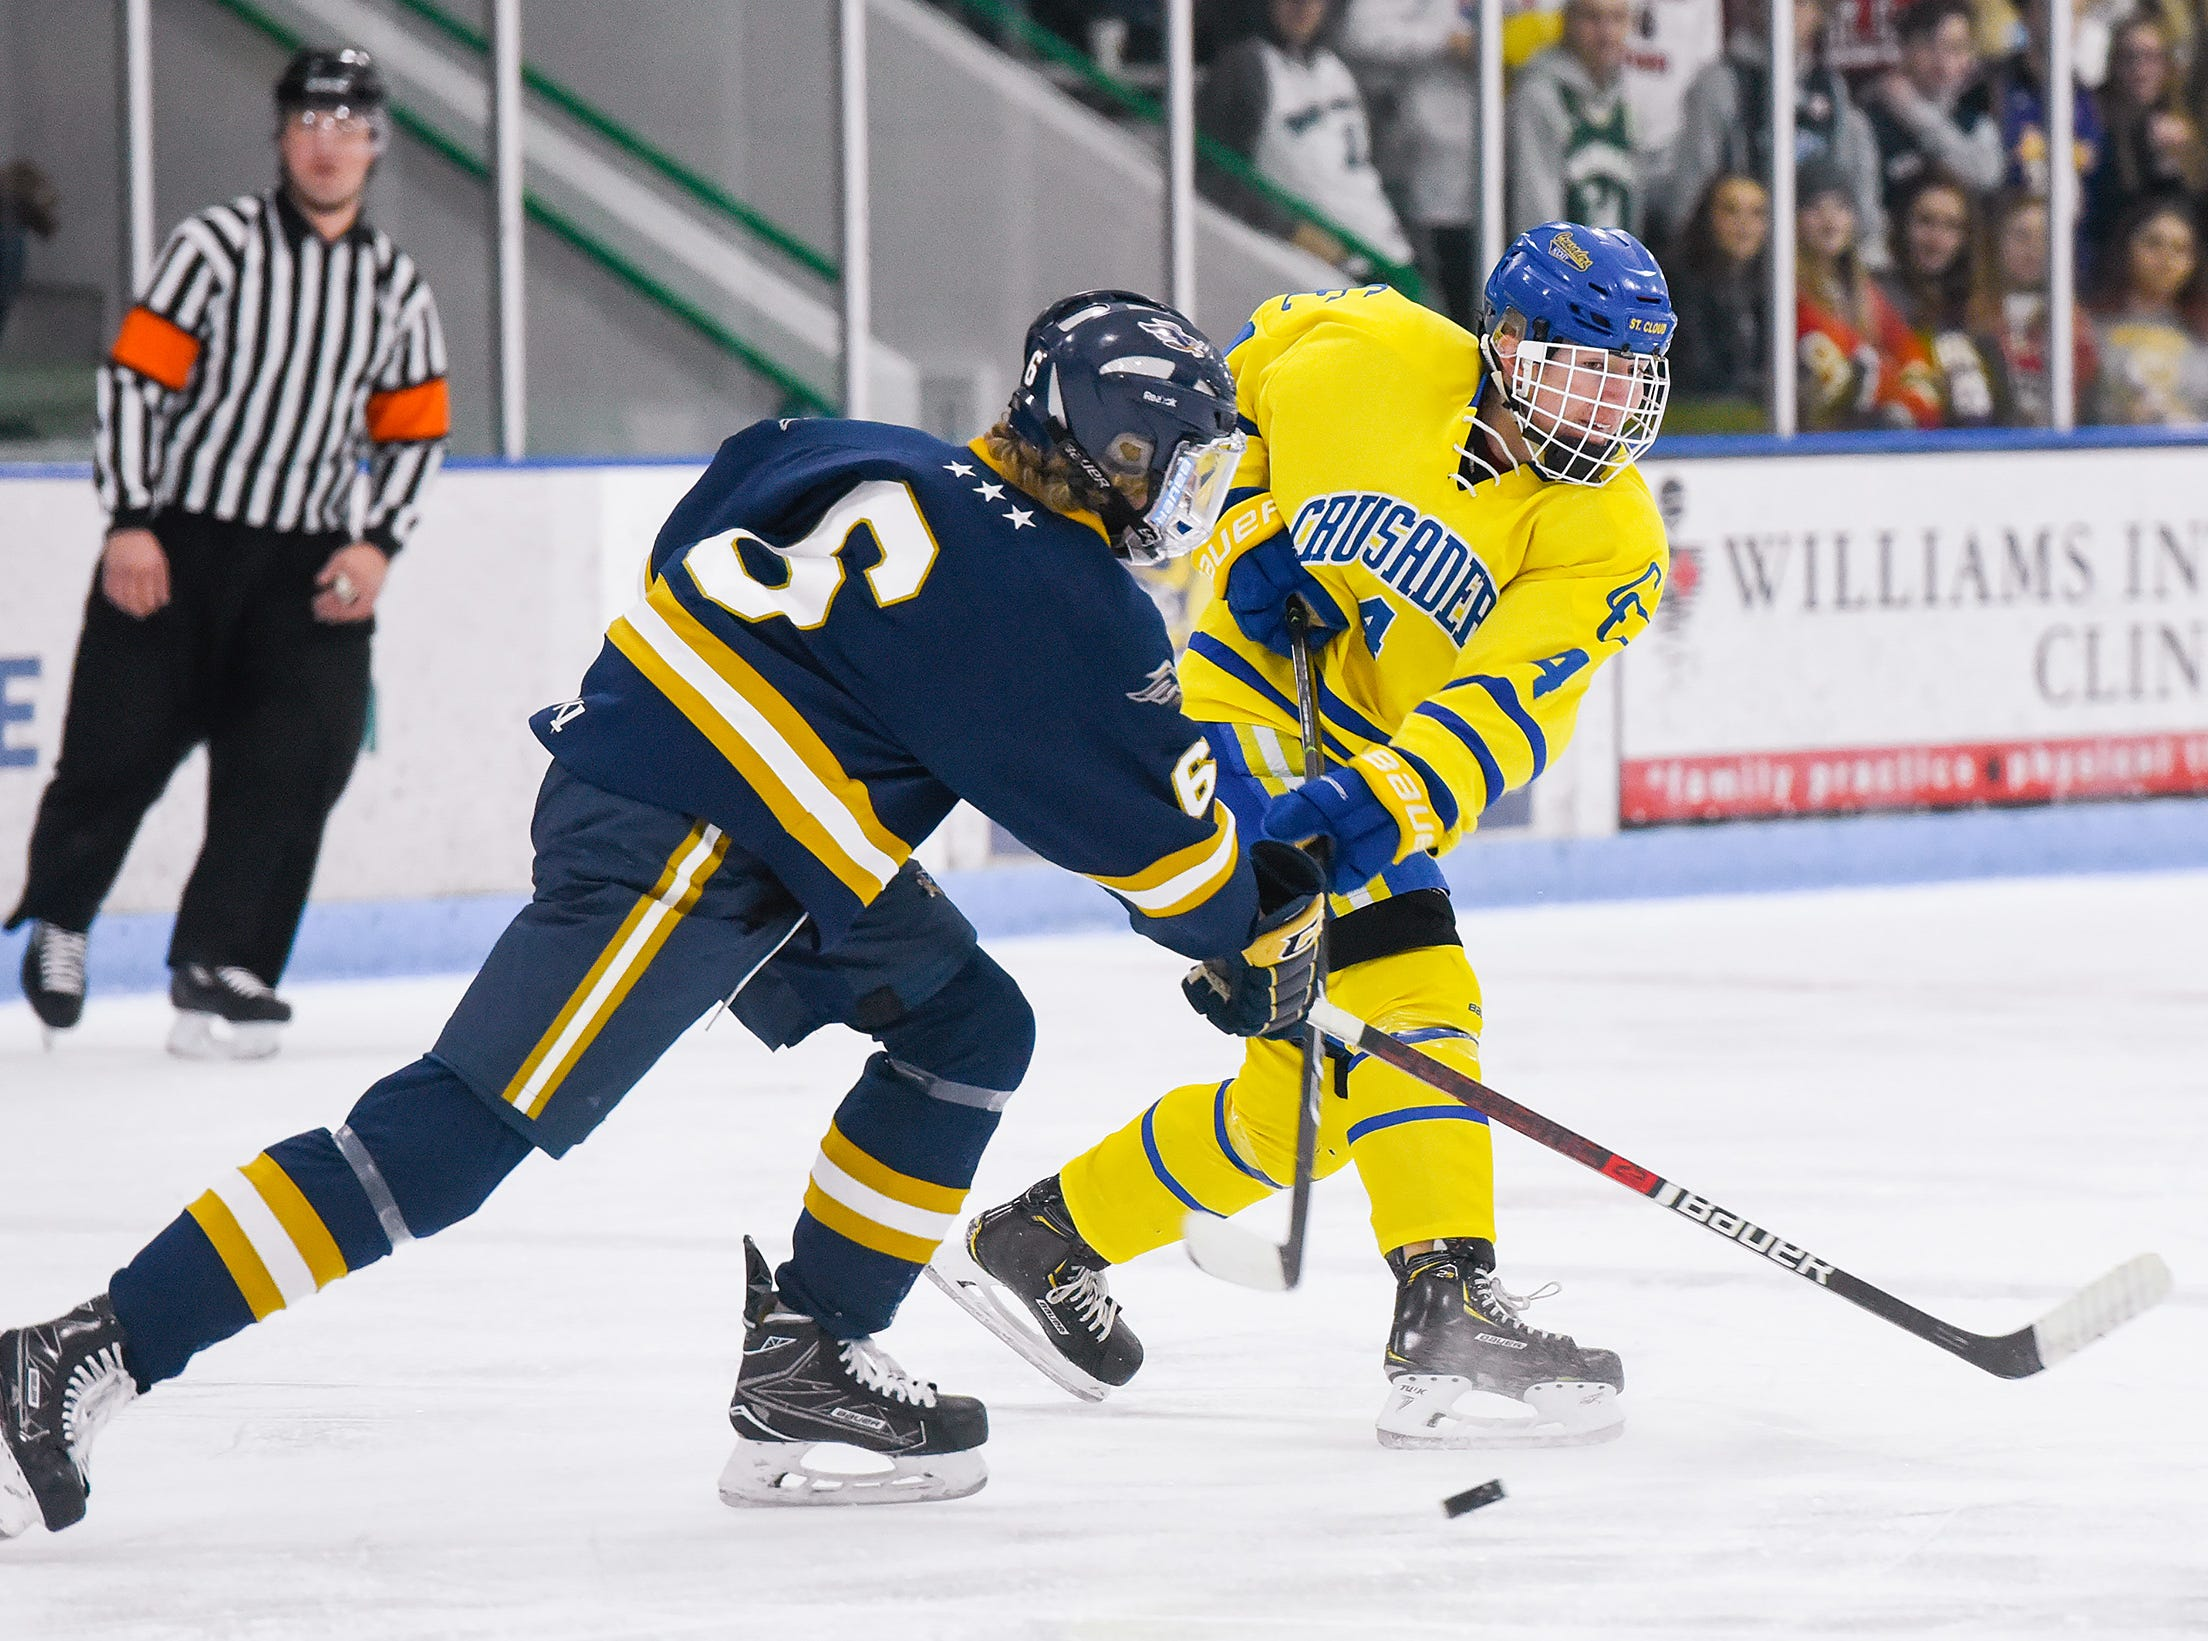 St. Cloud Cathedral's Jon Bell make a pass around Hermantown's Aydyn Dowd during the first period Friday, Jan. 4, at the MAC in St. Cloud.